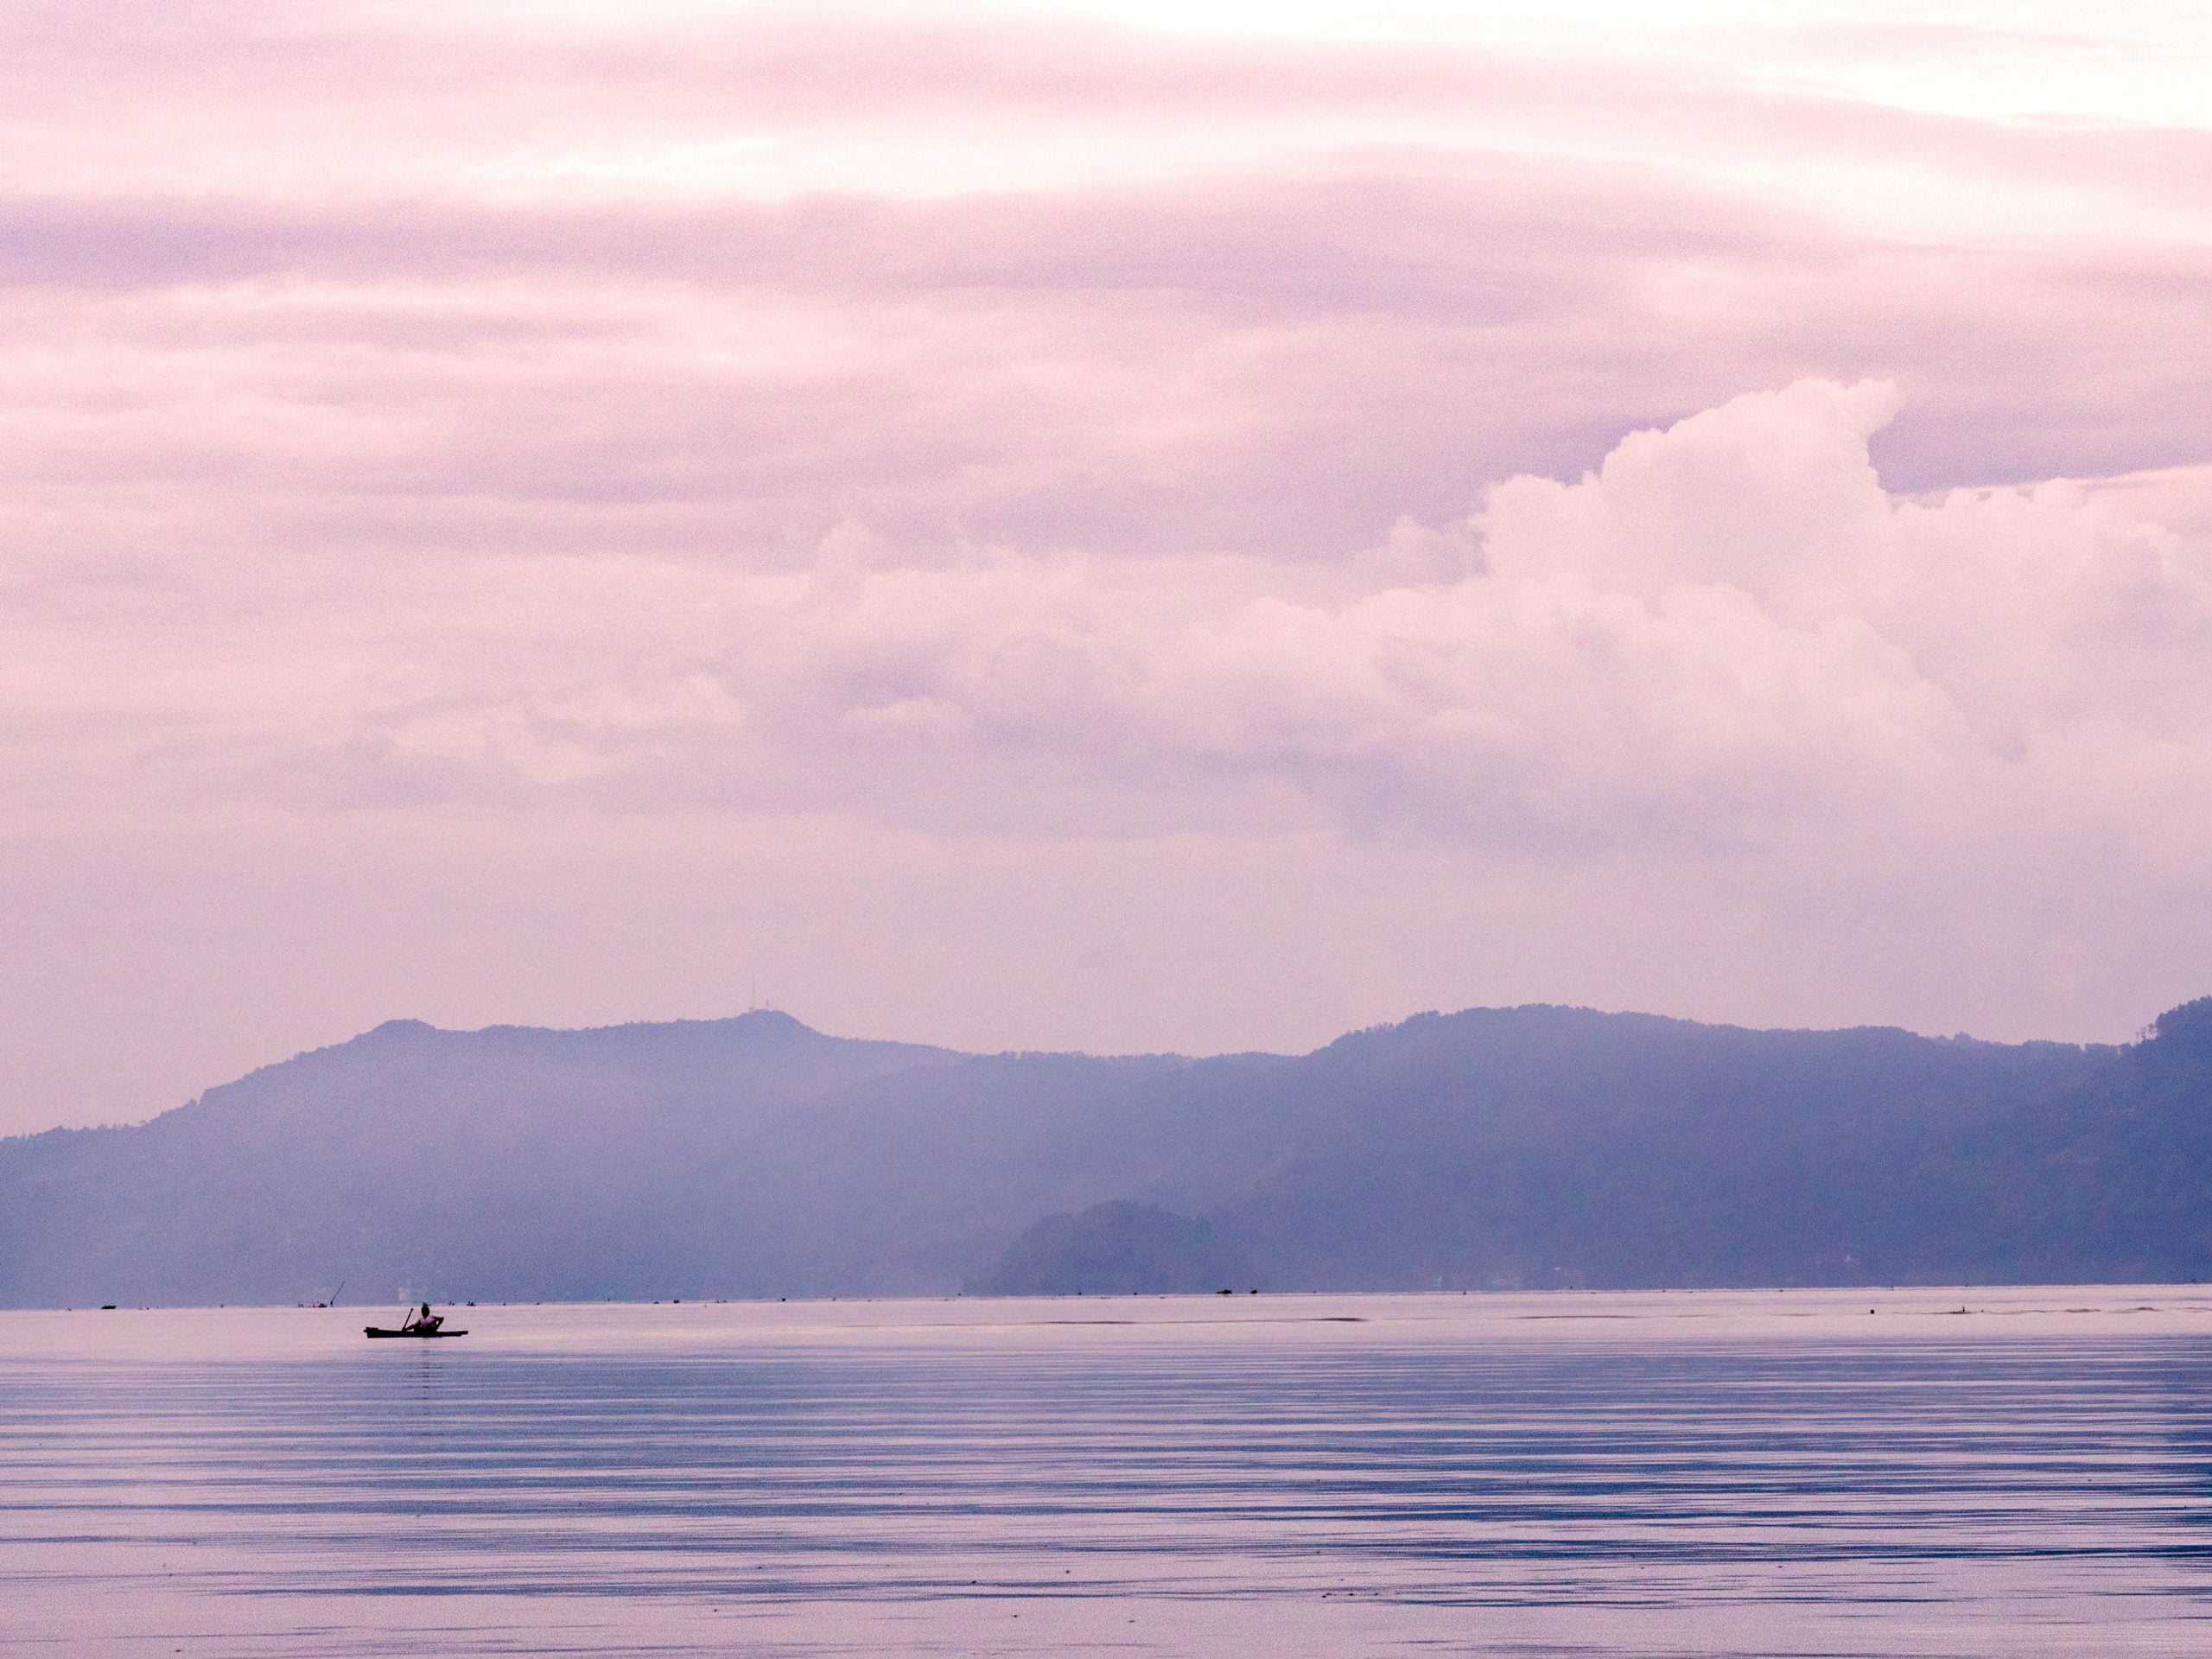 lac toba lac scaled - Les globe blogueurs - blog voyage nature